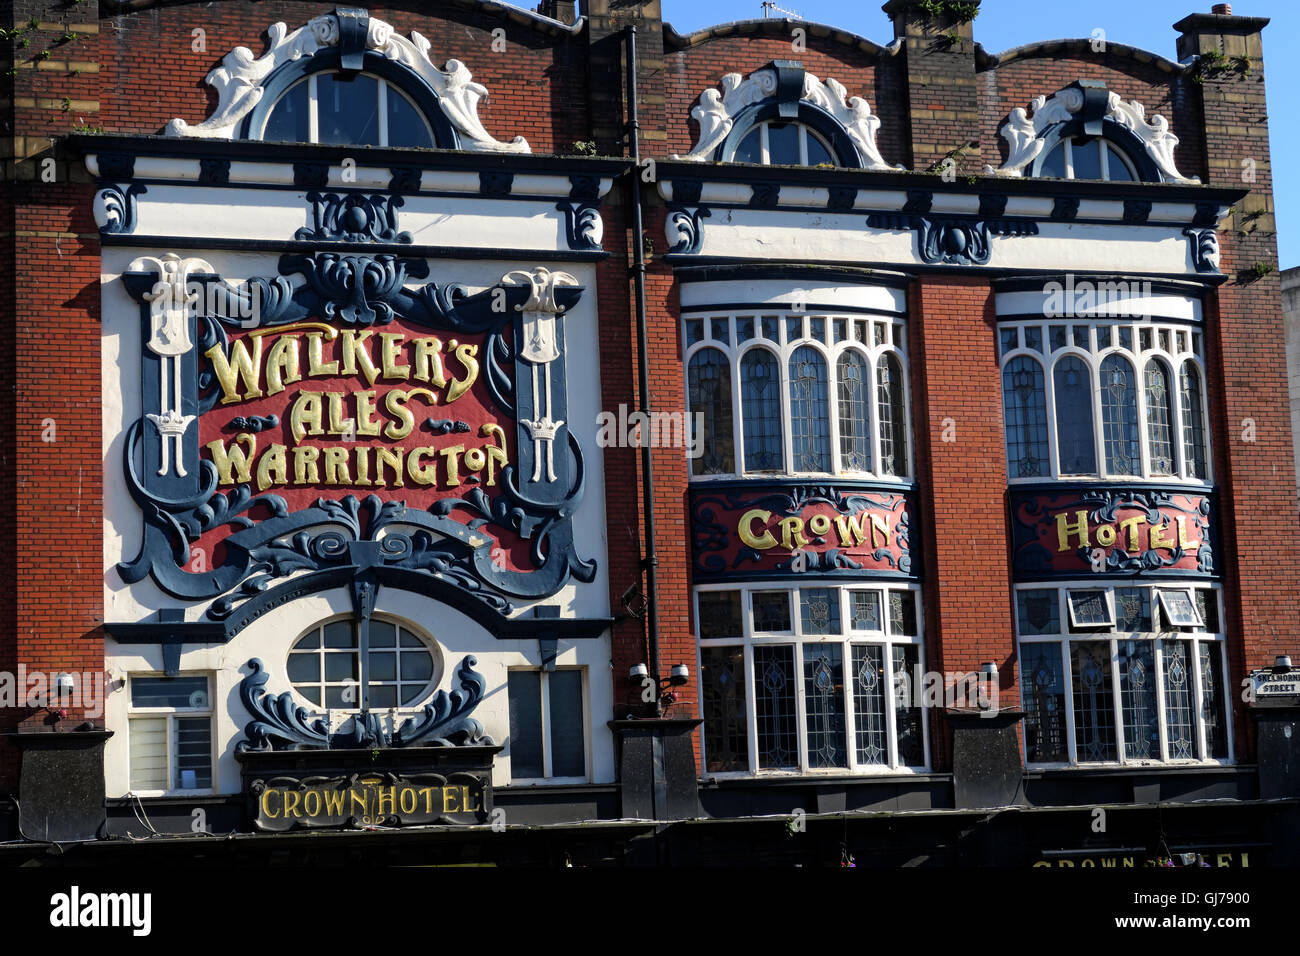 The Crown Hotel, 43 Lime St, Liverpool L1 1JQ - Walkers Warrington Ales - Stock Image